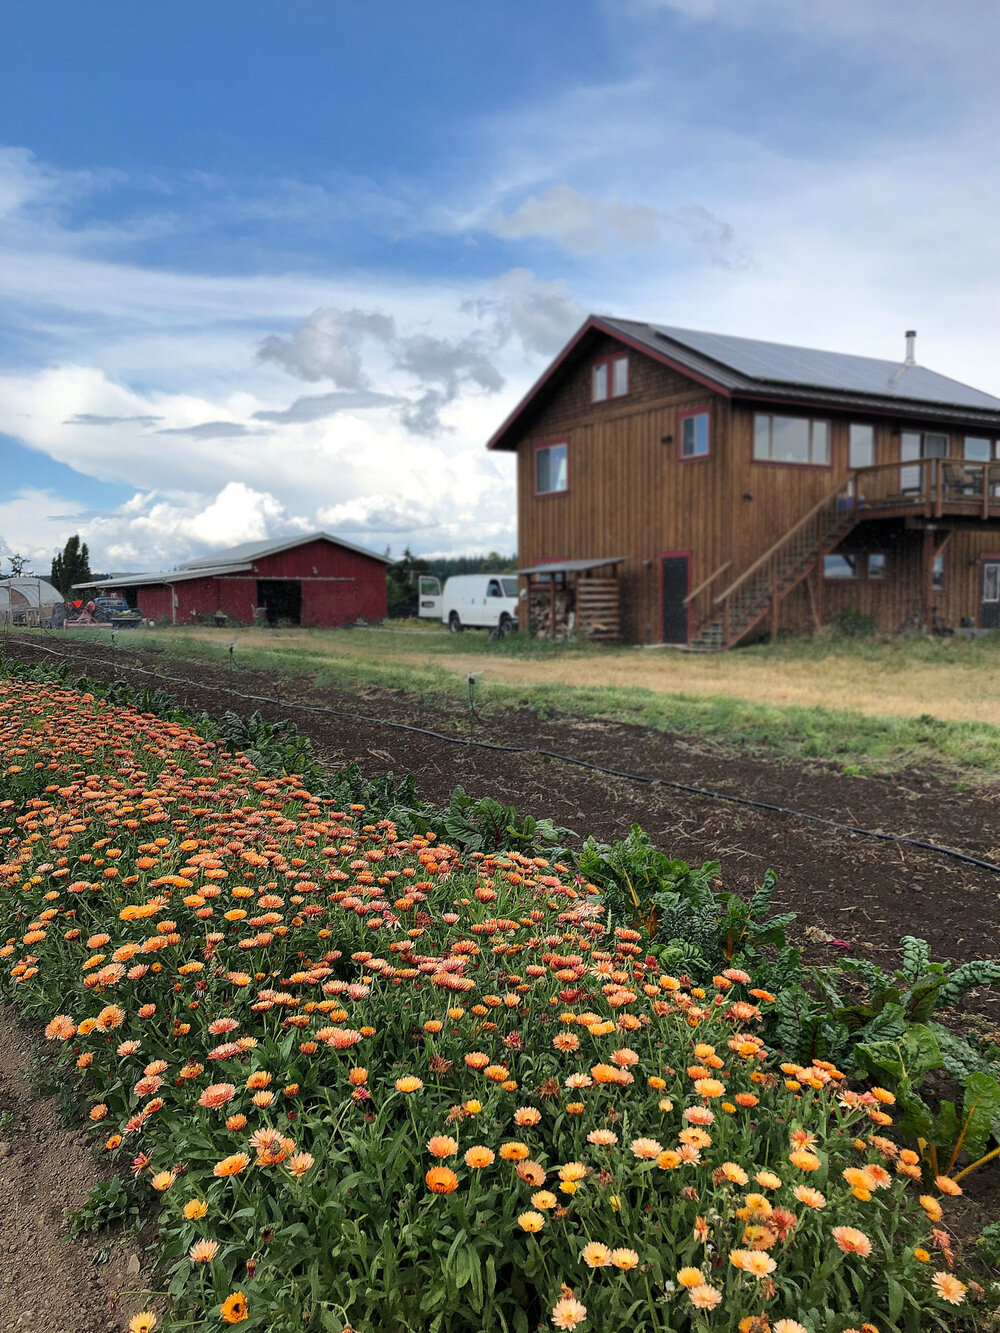 Calendula and a view of the barn and house